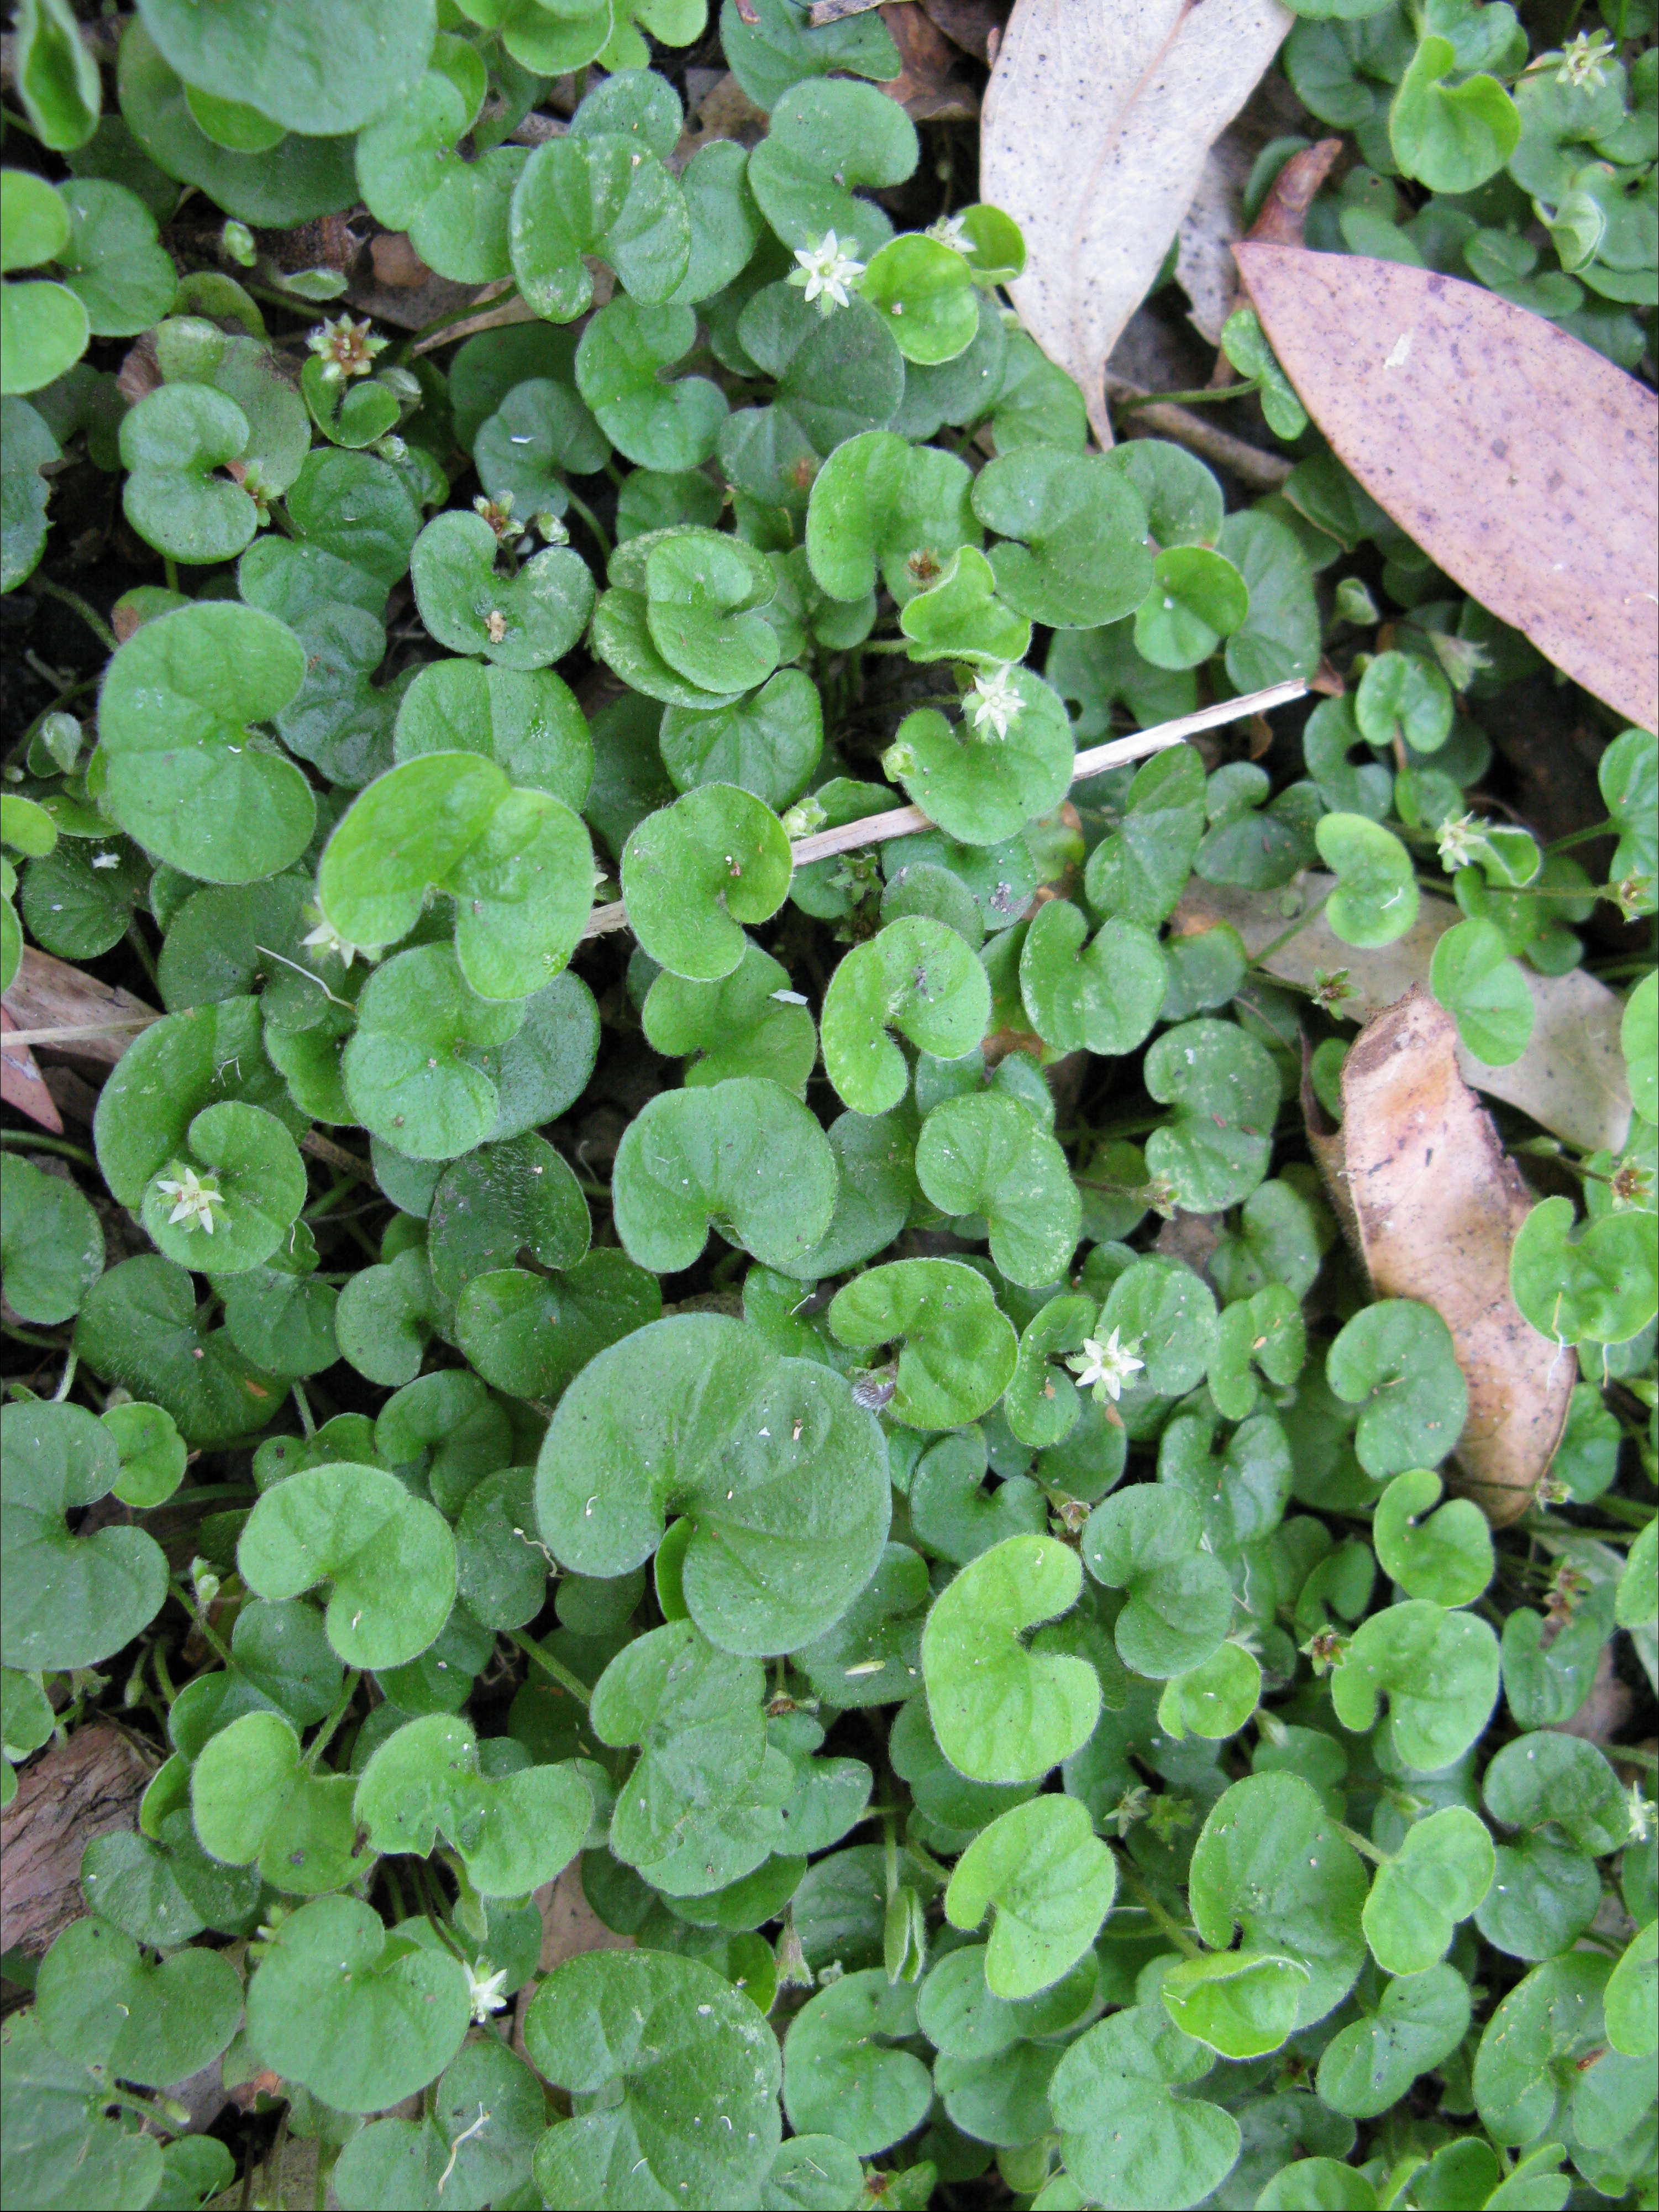 How to plant ground cover between pavers - O Neill Rose Architects Created A Transition Between Pavers And Irish Moss Black Mexican River Rocks Irish Moss Is 5 29 For Three From Direct Gardening